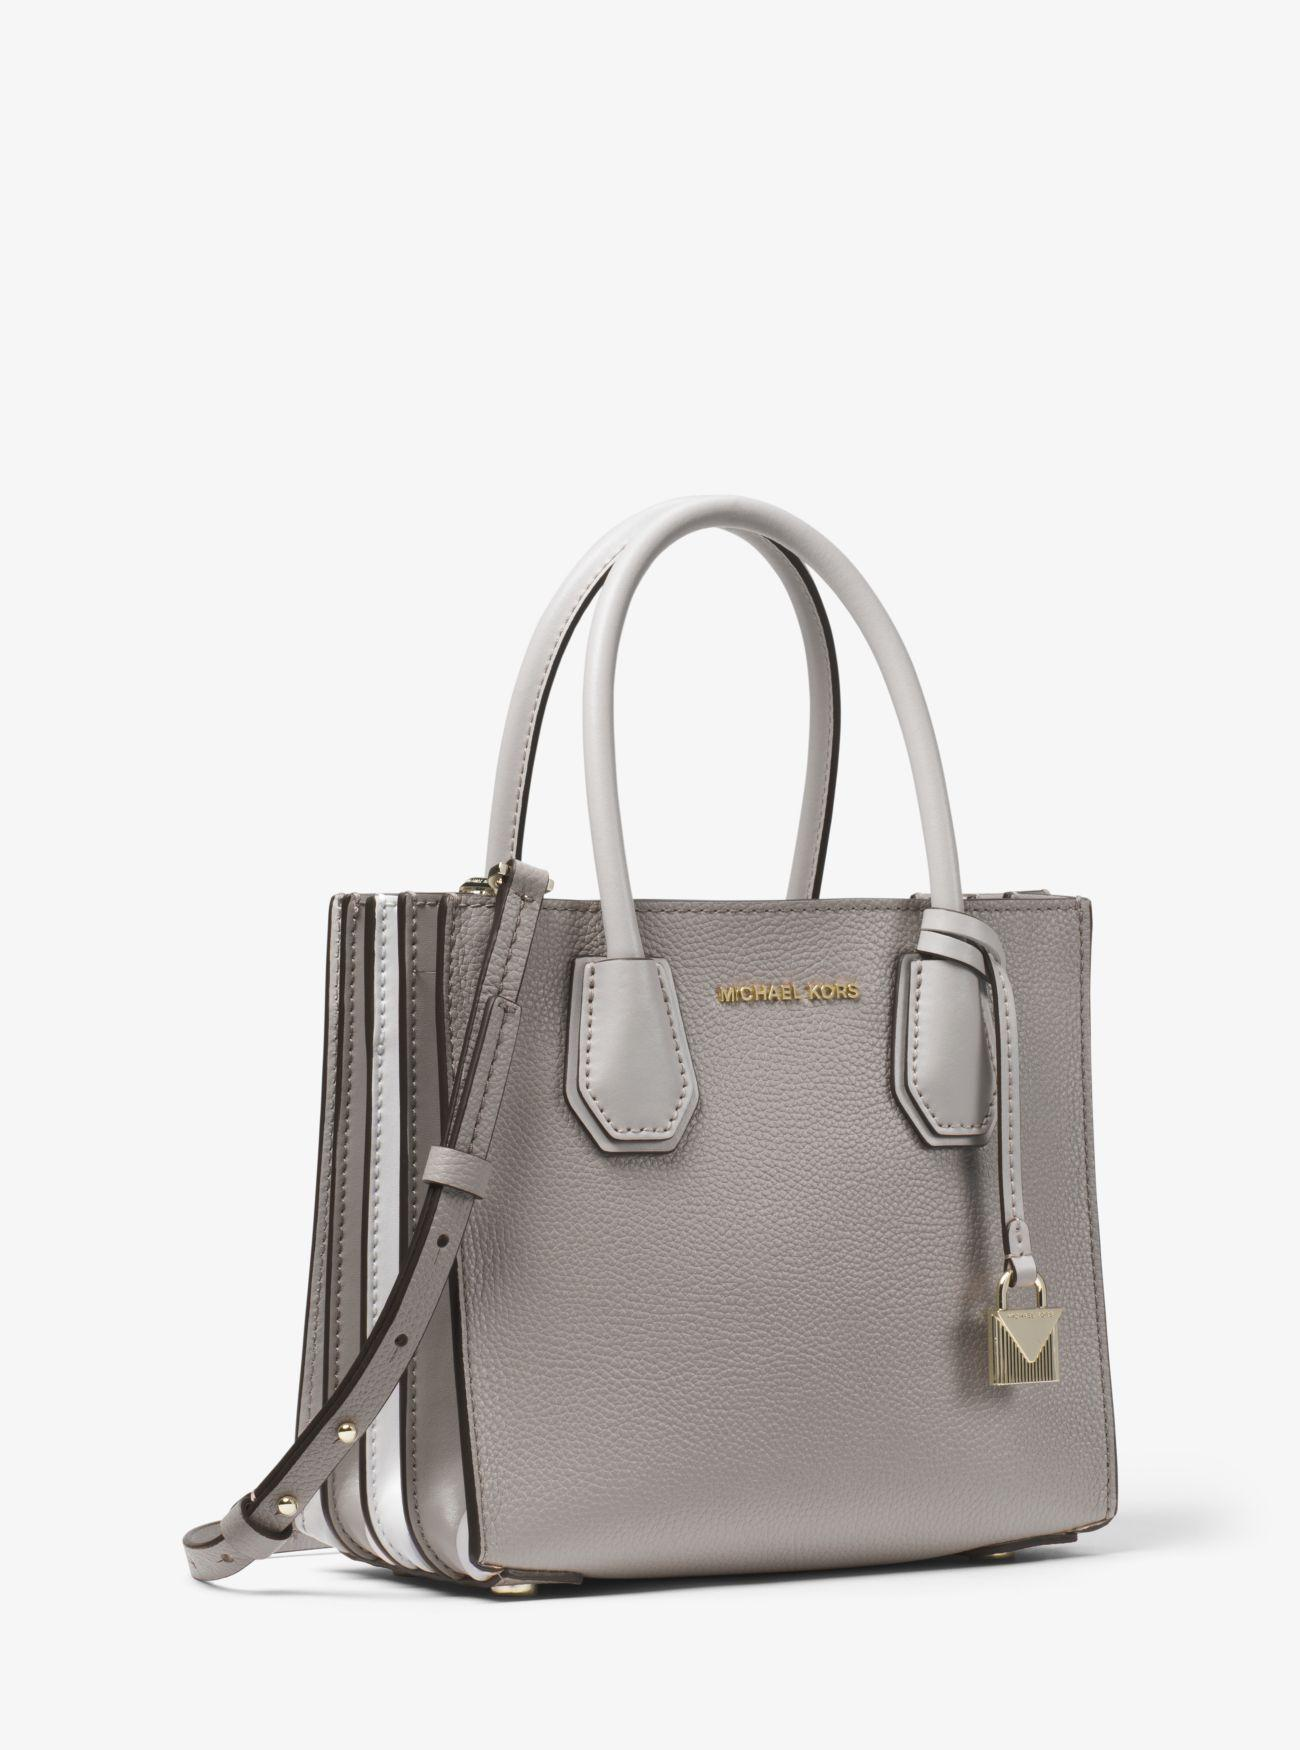 e70e1199c541 Michael Kors - Gray Mercer Medium Pebbled Leather Accordion Crossbody Bag -  Lyst. View fullscreen